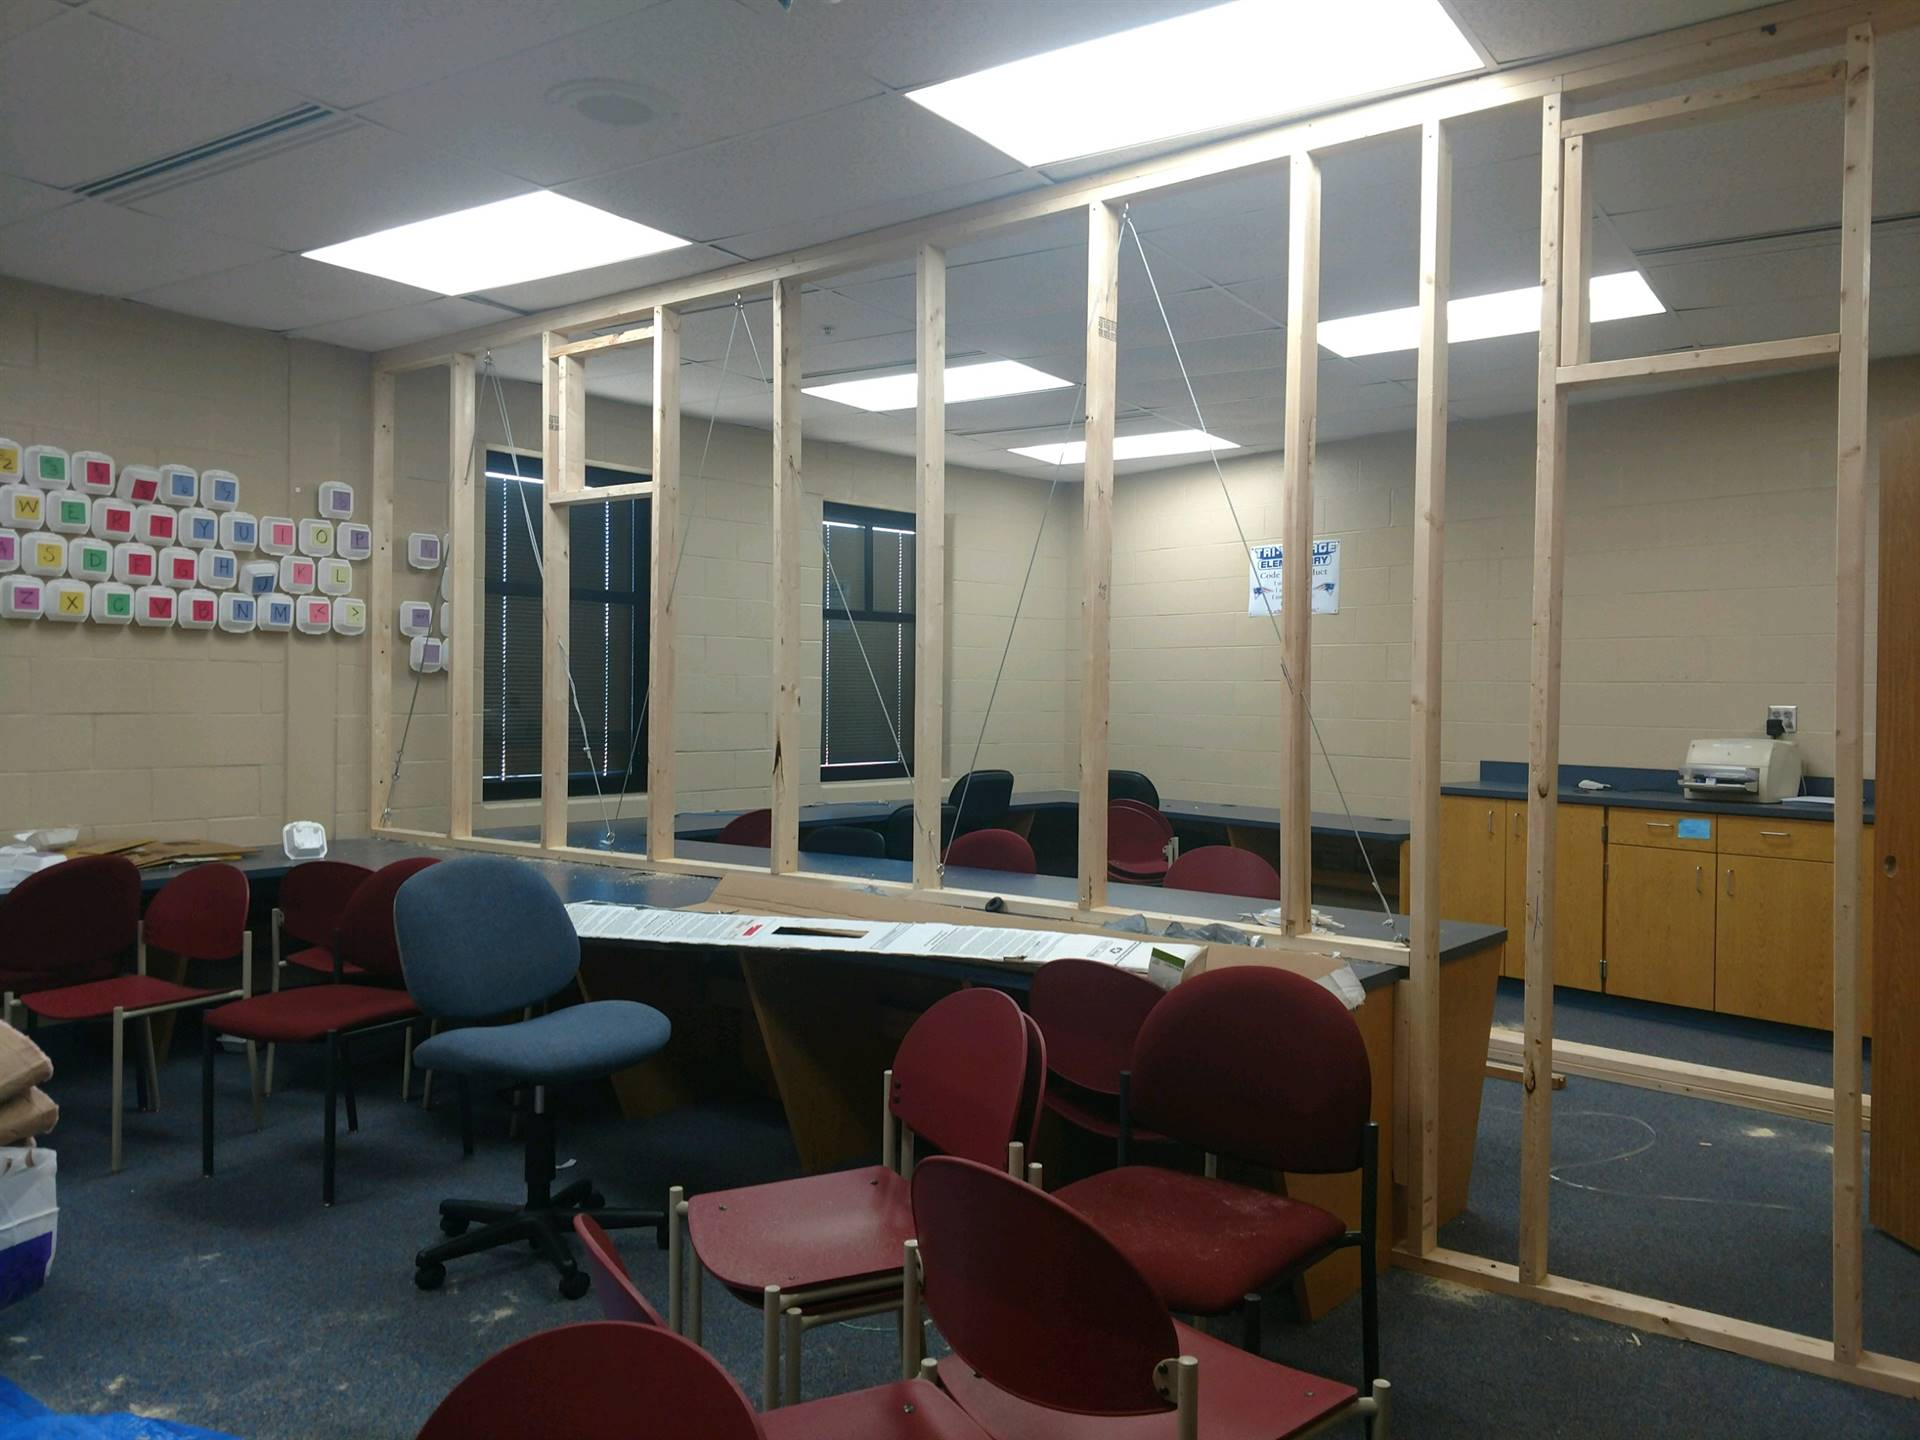 Partitions starting to take place.